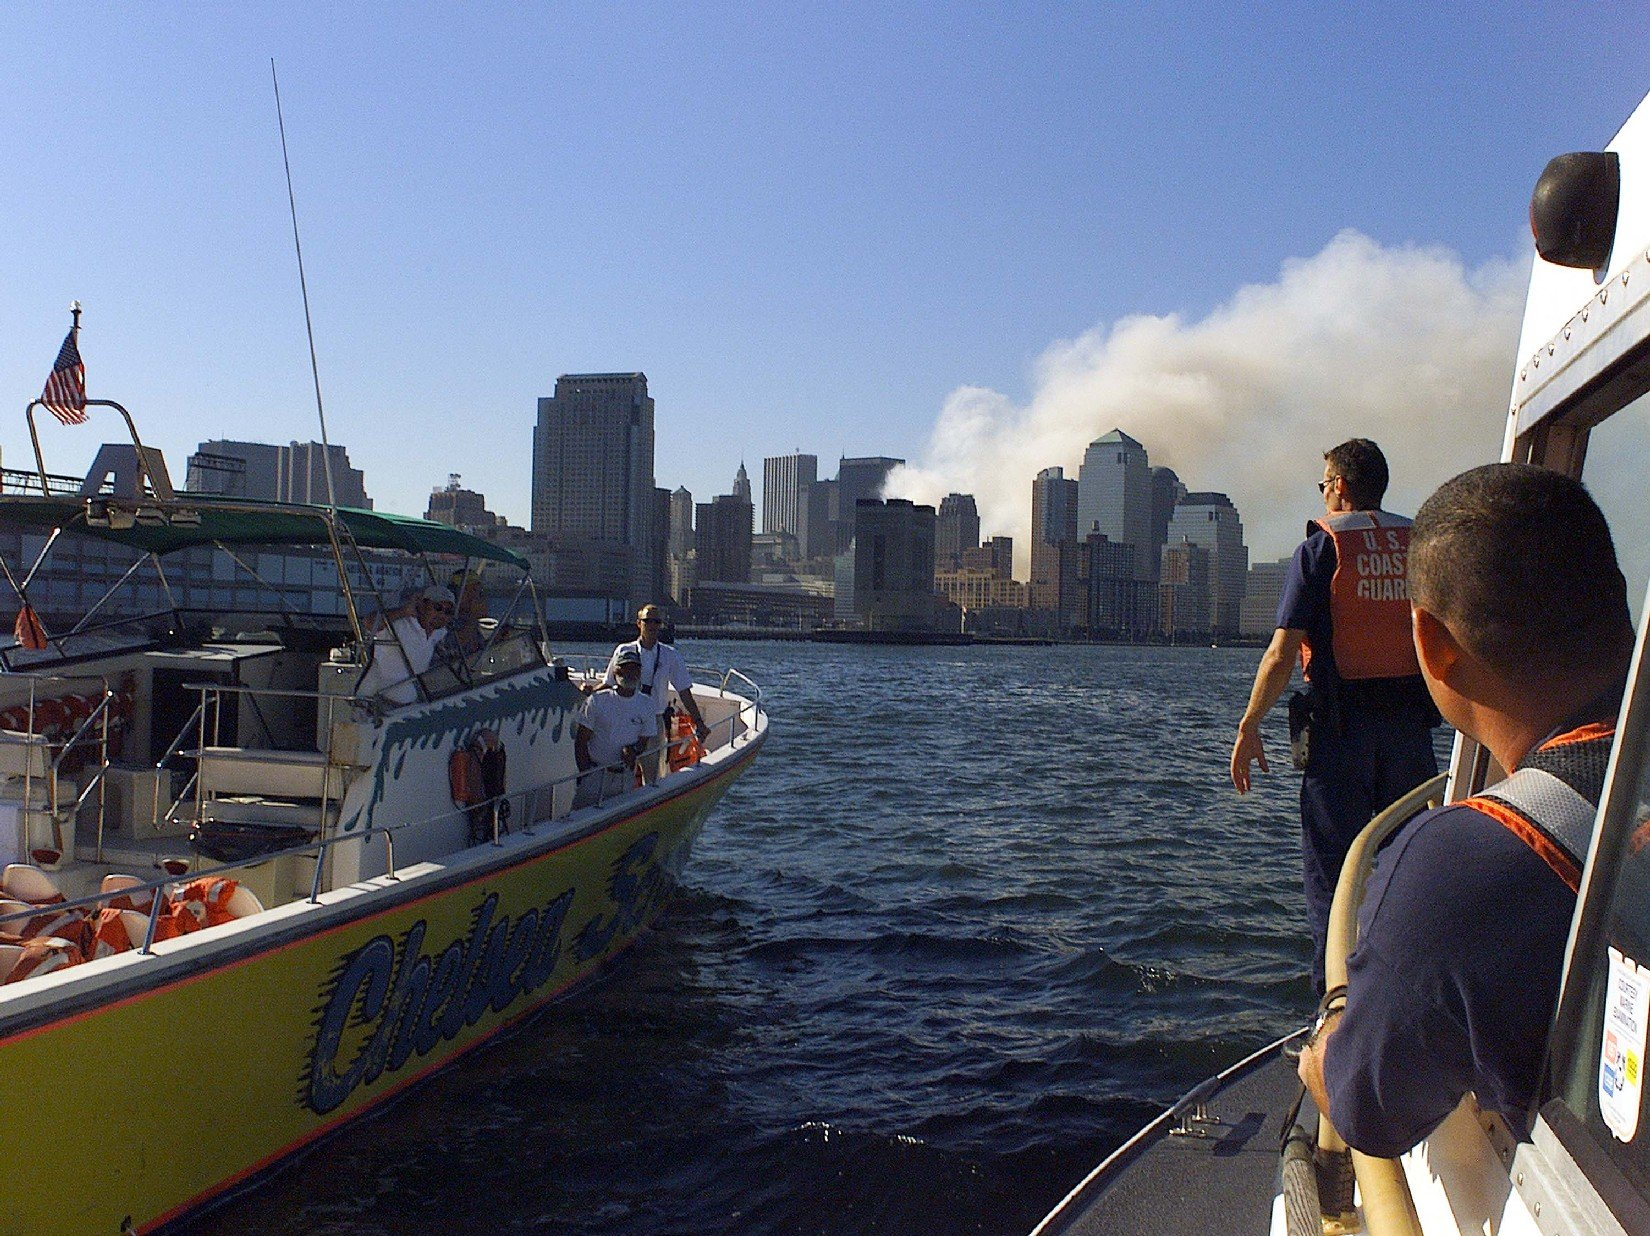 Coast Guard Led 9-11 Water Evacuation Was 'Bigger Than Dunkirk